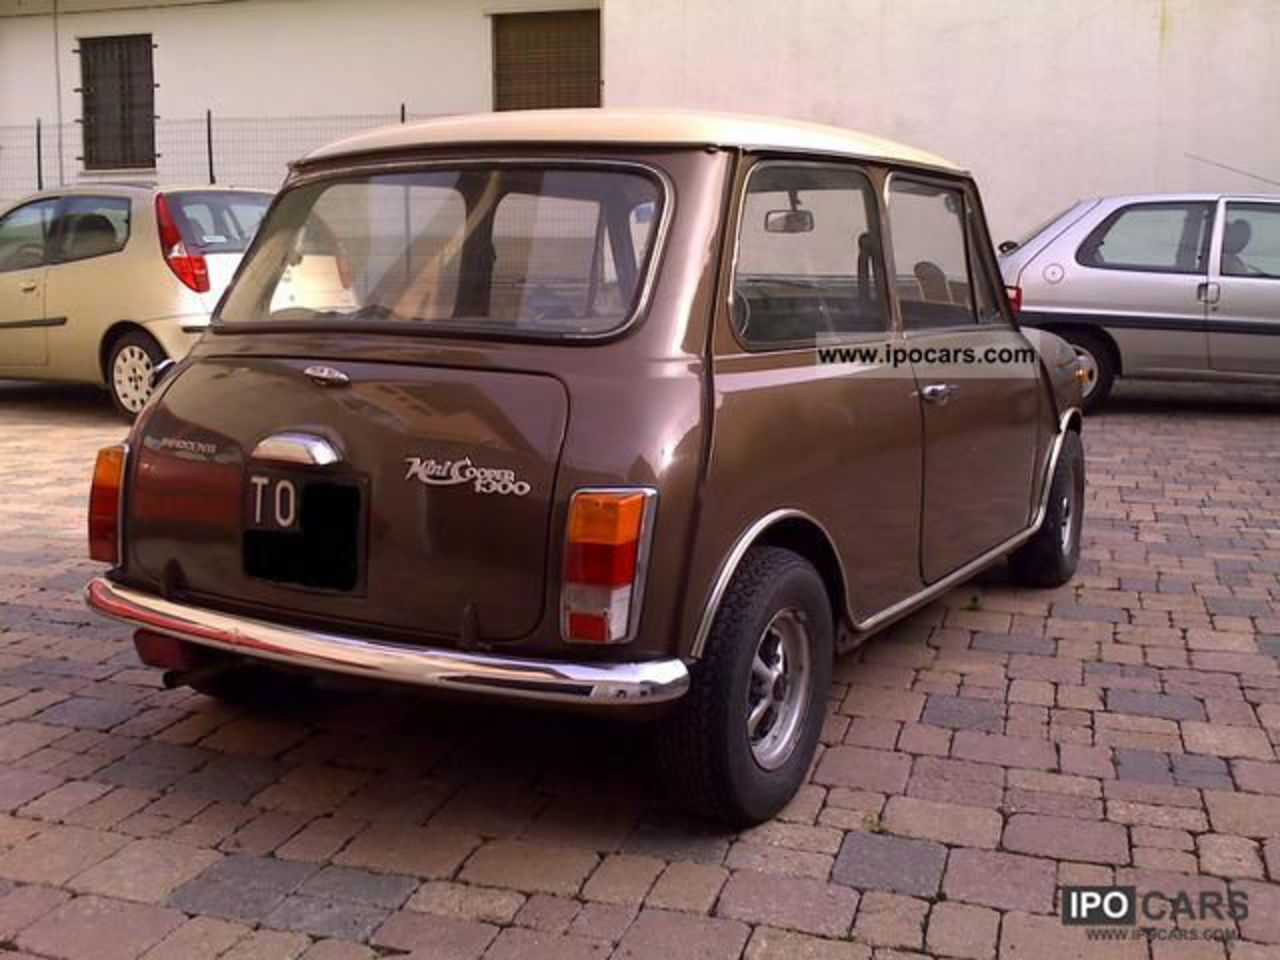 1972 MINI Mini Cooper 1300, Series I, 1972 - Car Photo and Specs